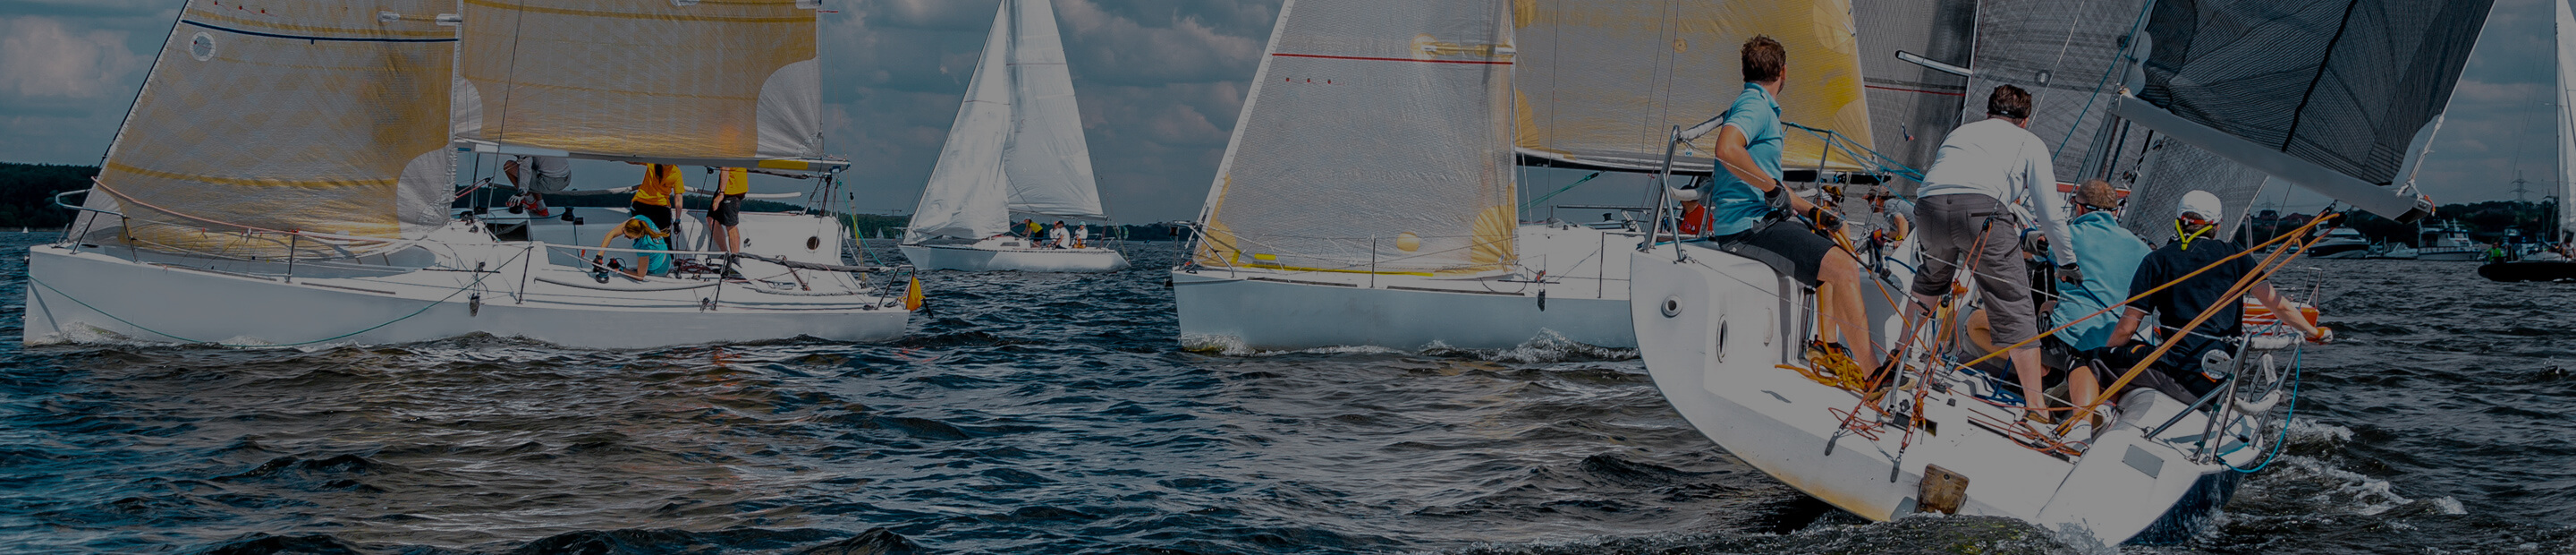 Sailing regattas in Cyprus